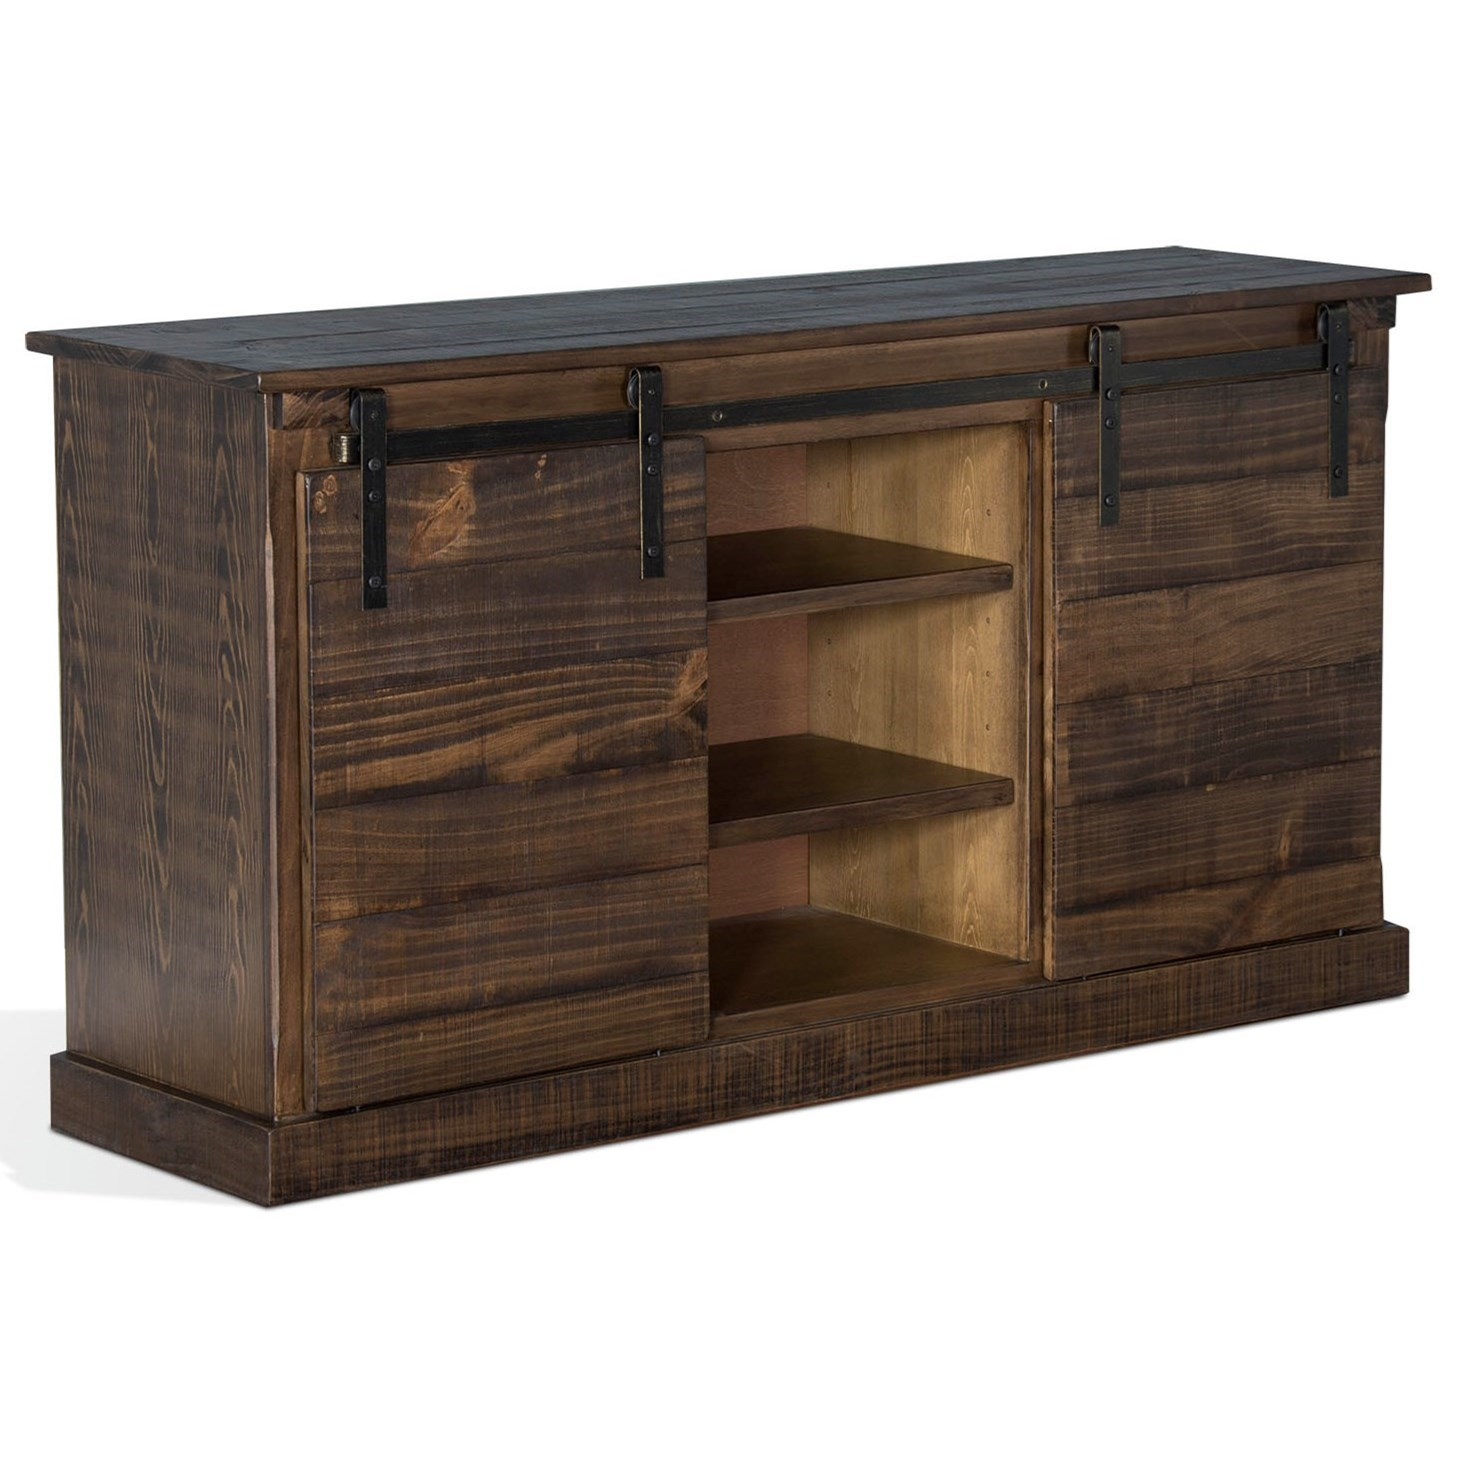 "Sunny Designs 3577 65"" TV Console w/ Barn Doors - Item Number: 3577TL"